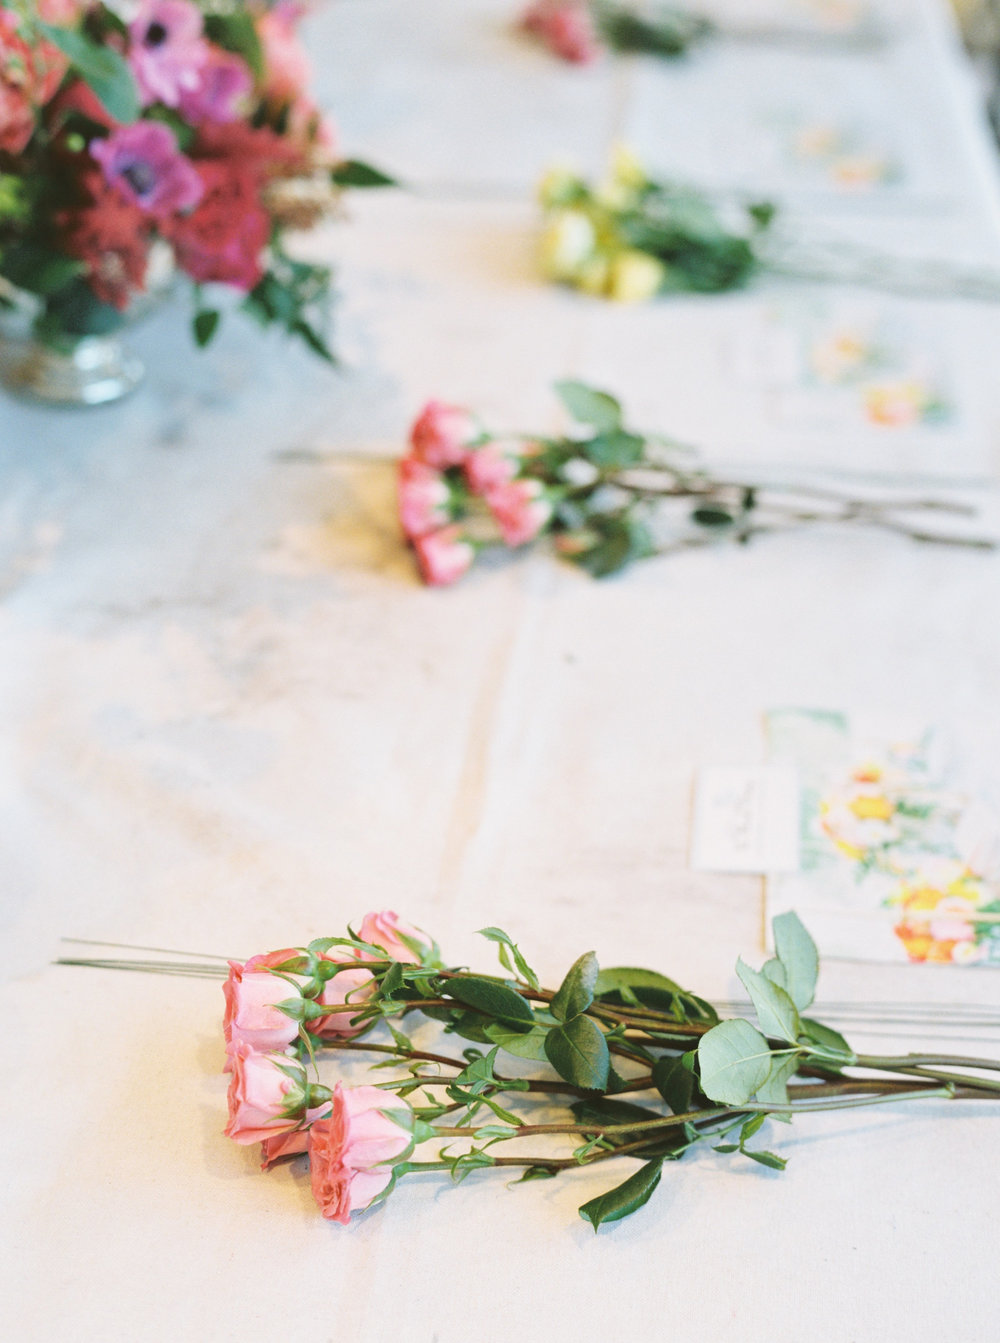 Flower Crown Workshop At Anthropologie Vo Floral Design